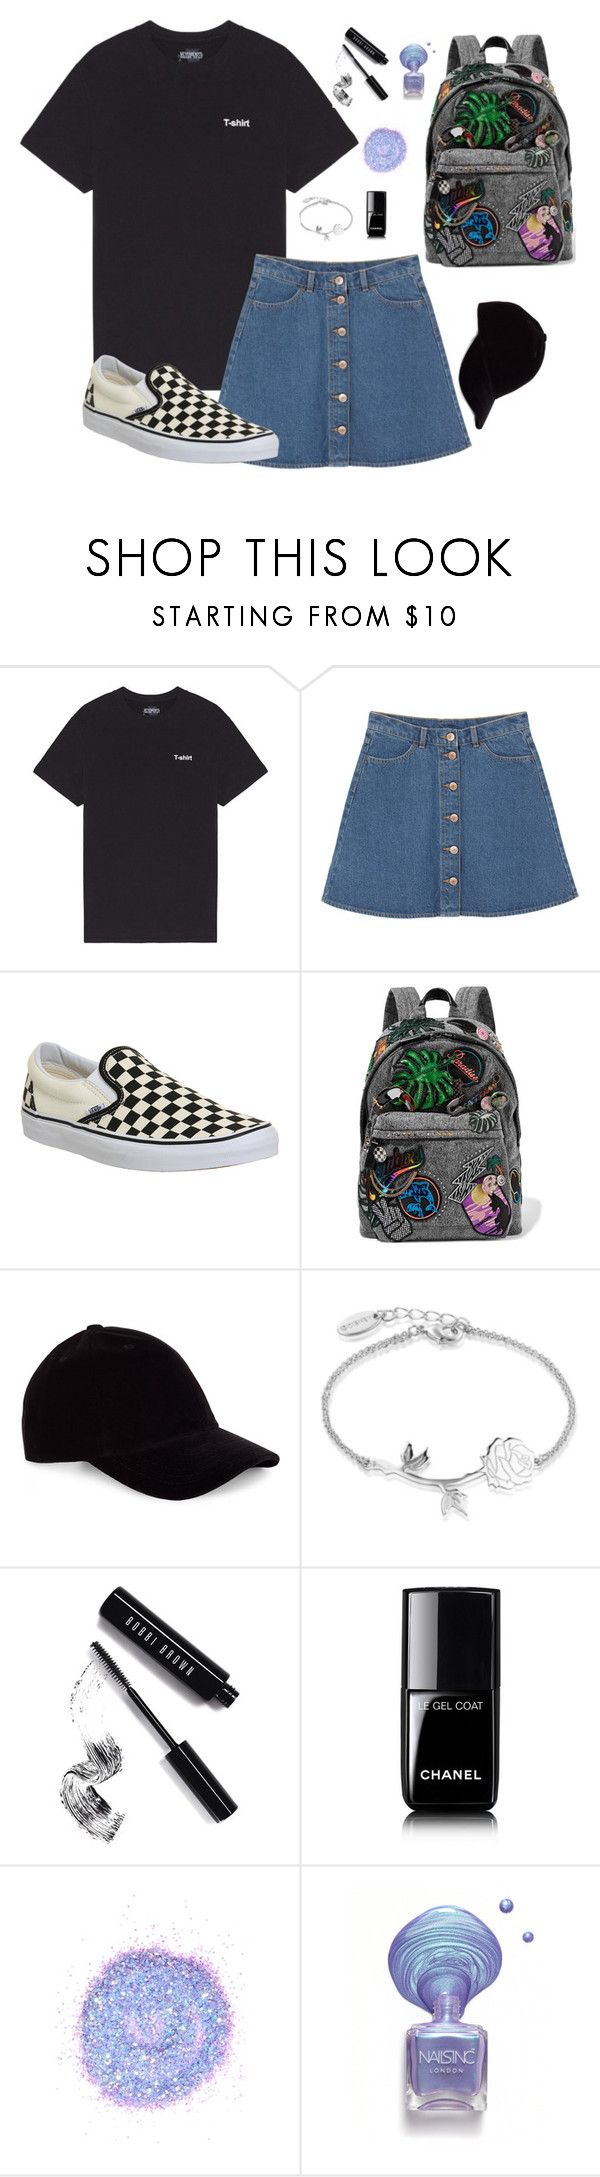 """♡♡♡ What is your favorite anime? ♡♡♡"" by dozyman ❤ liked on Polyvore featuring Monki, Vans, Marc Jacobs, Le Amonie, Disney, Bobbi Brown Cosmetics, Chanel and The Gypsy Shrine"